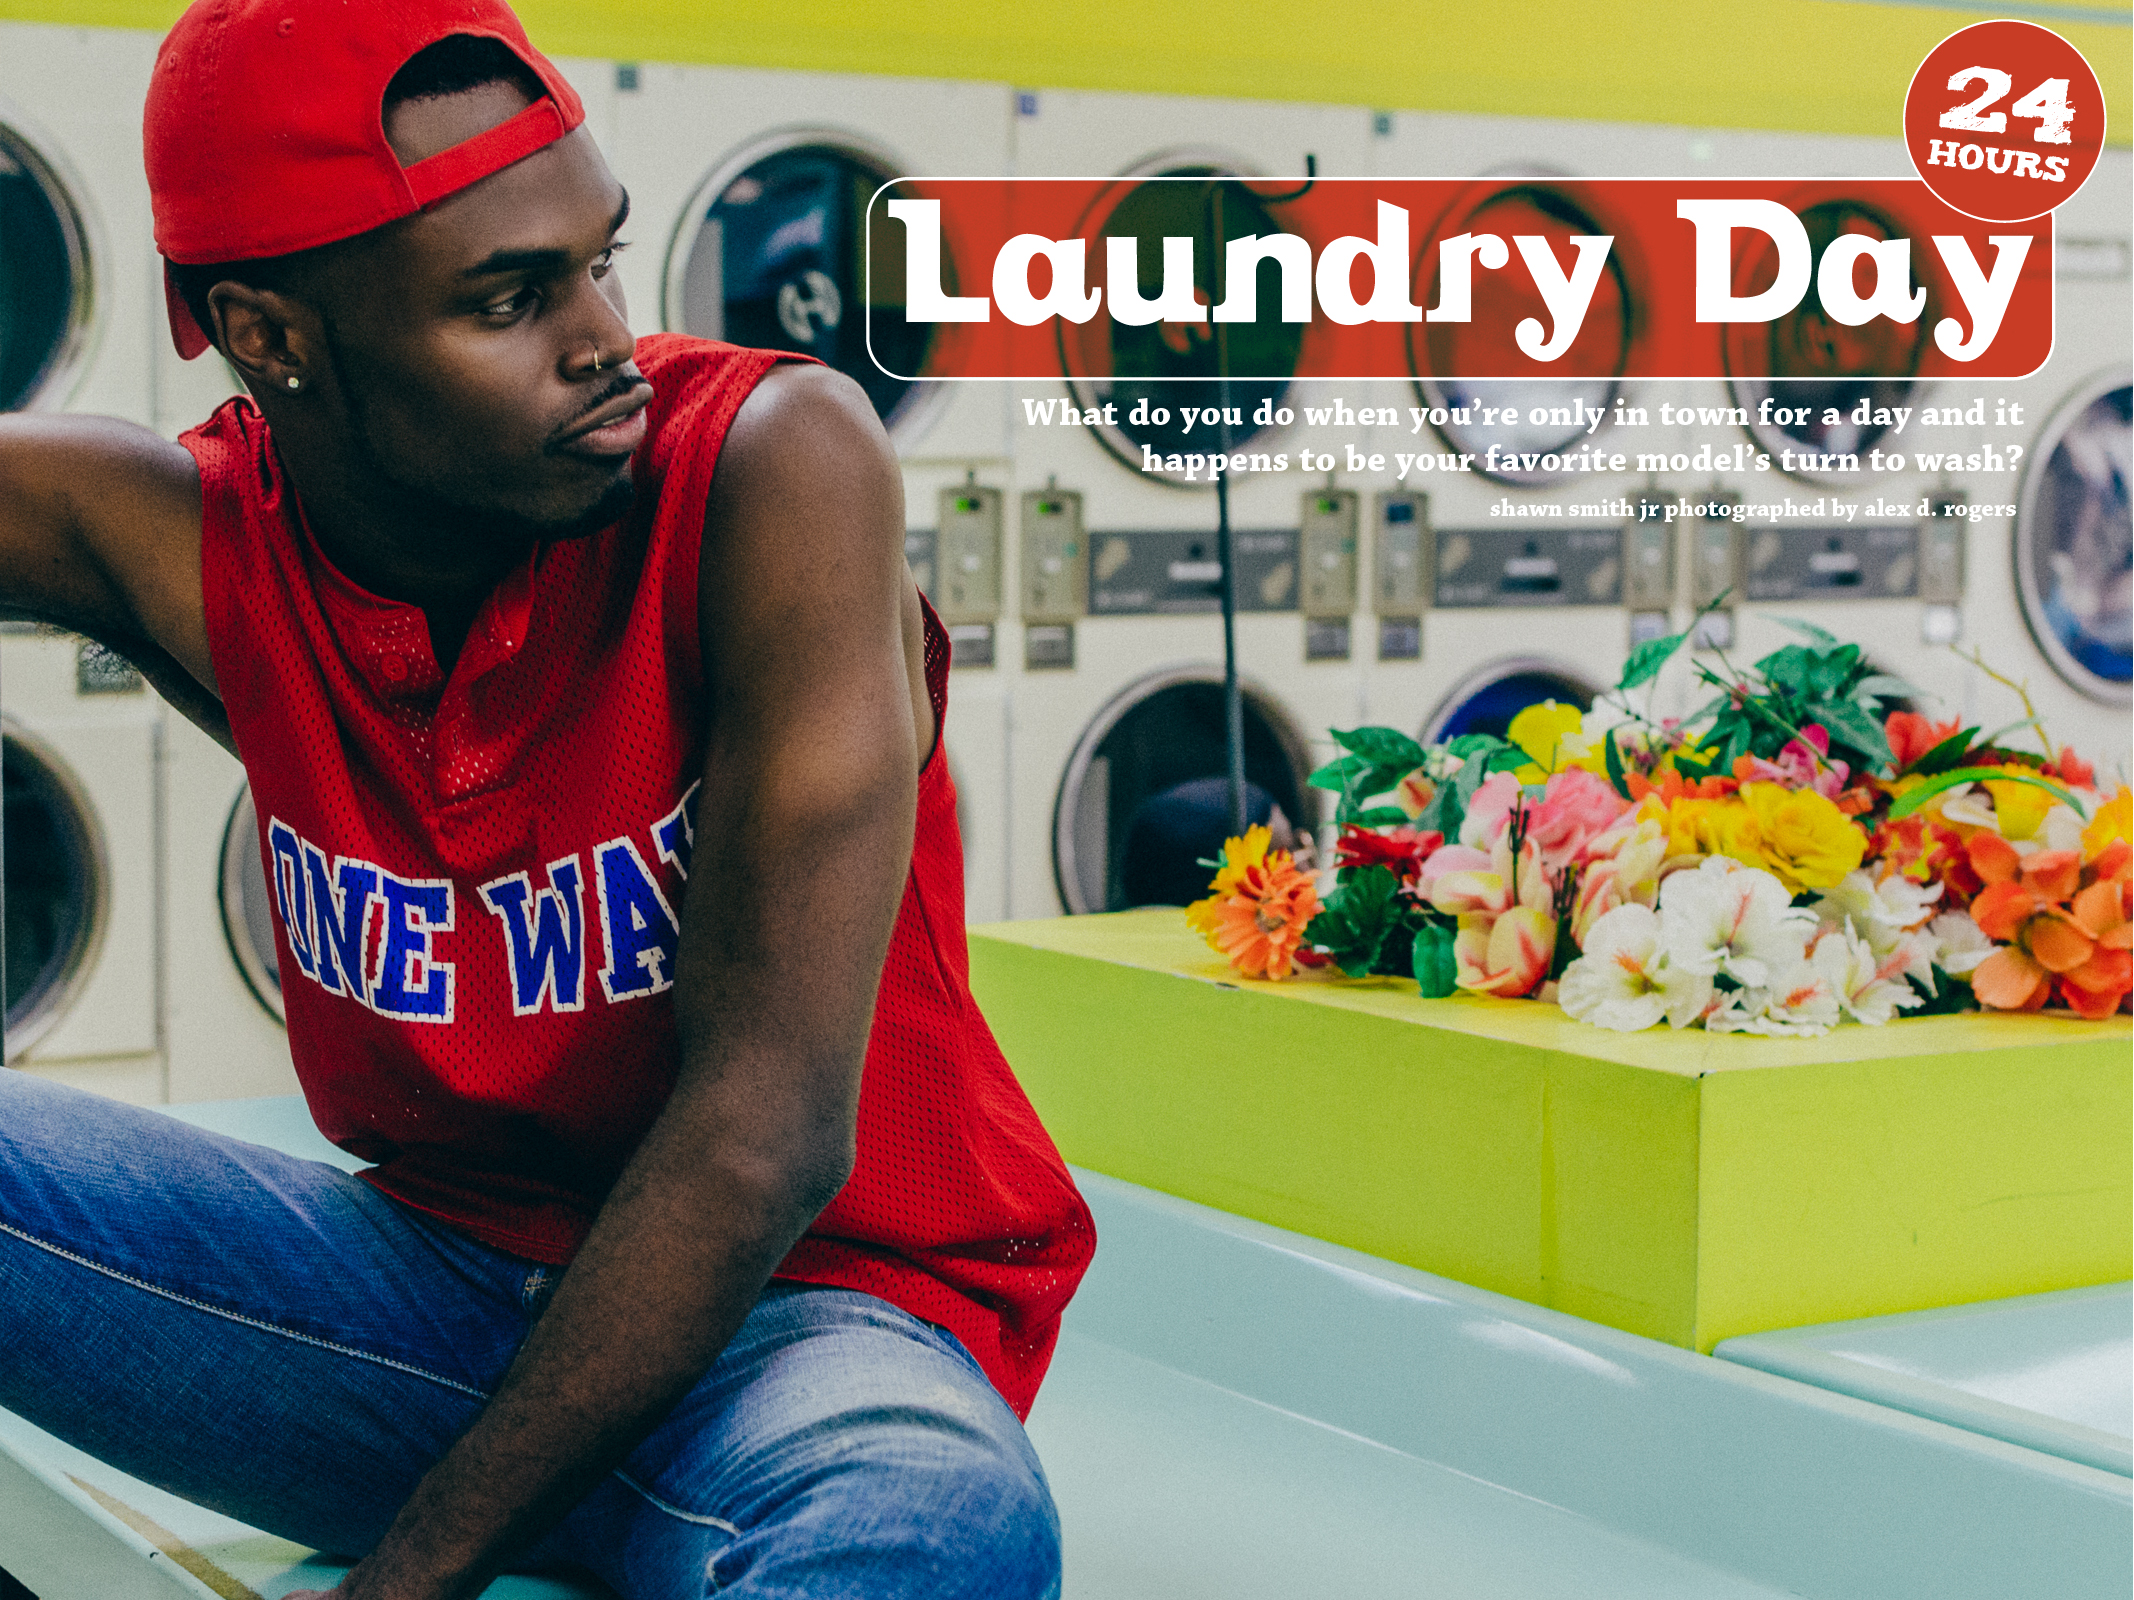 laundry day  shawn smith jr.